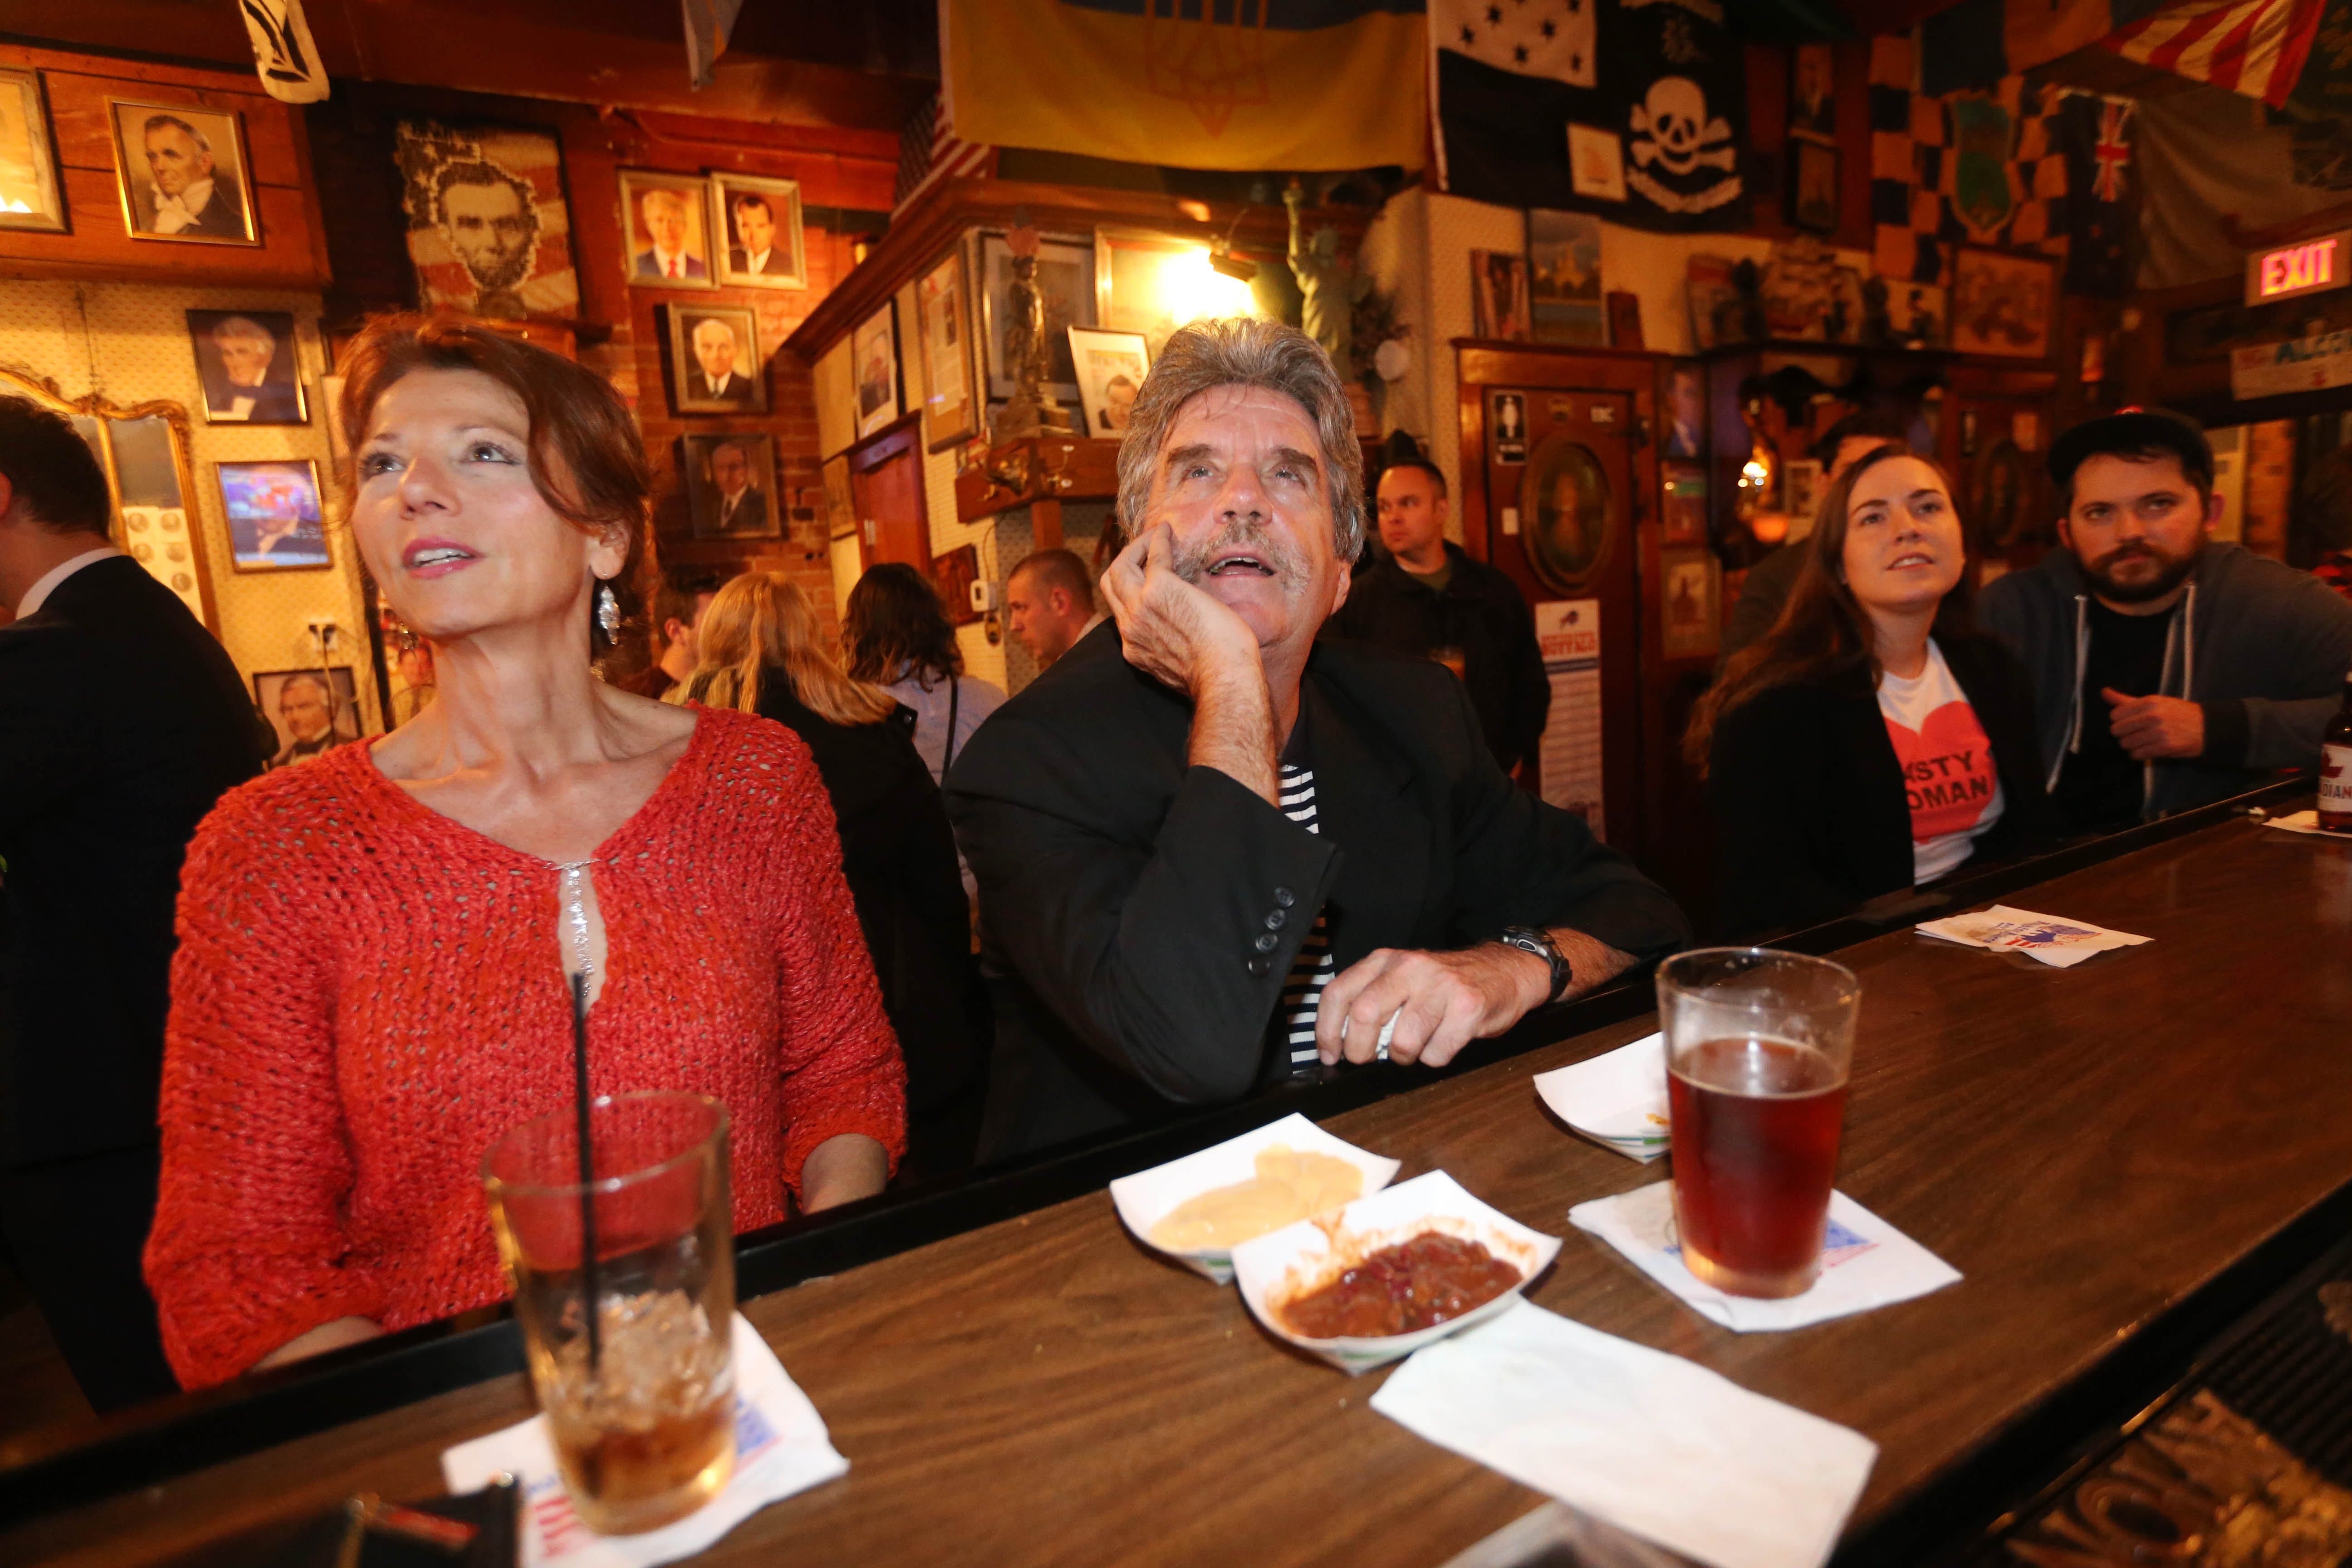 Maria Glover, of Kenmore, and Patrick Ellis of Orchard Park settle in for the night at Founding Fathers Pub in Buffalo to watch election results, Tuesday, Nov. 8, 2016. (Sharon Cantillon/Buffalo News)